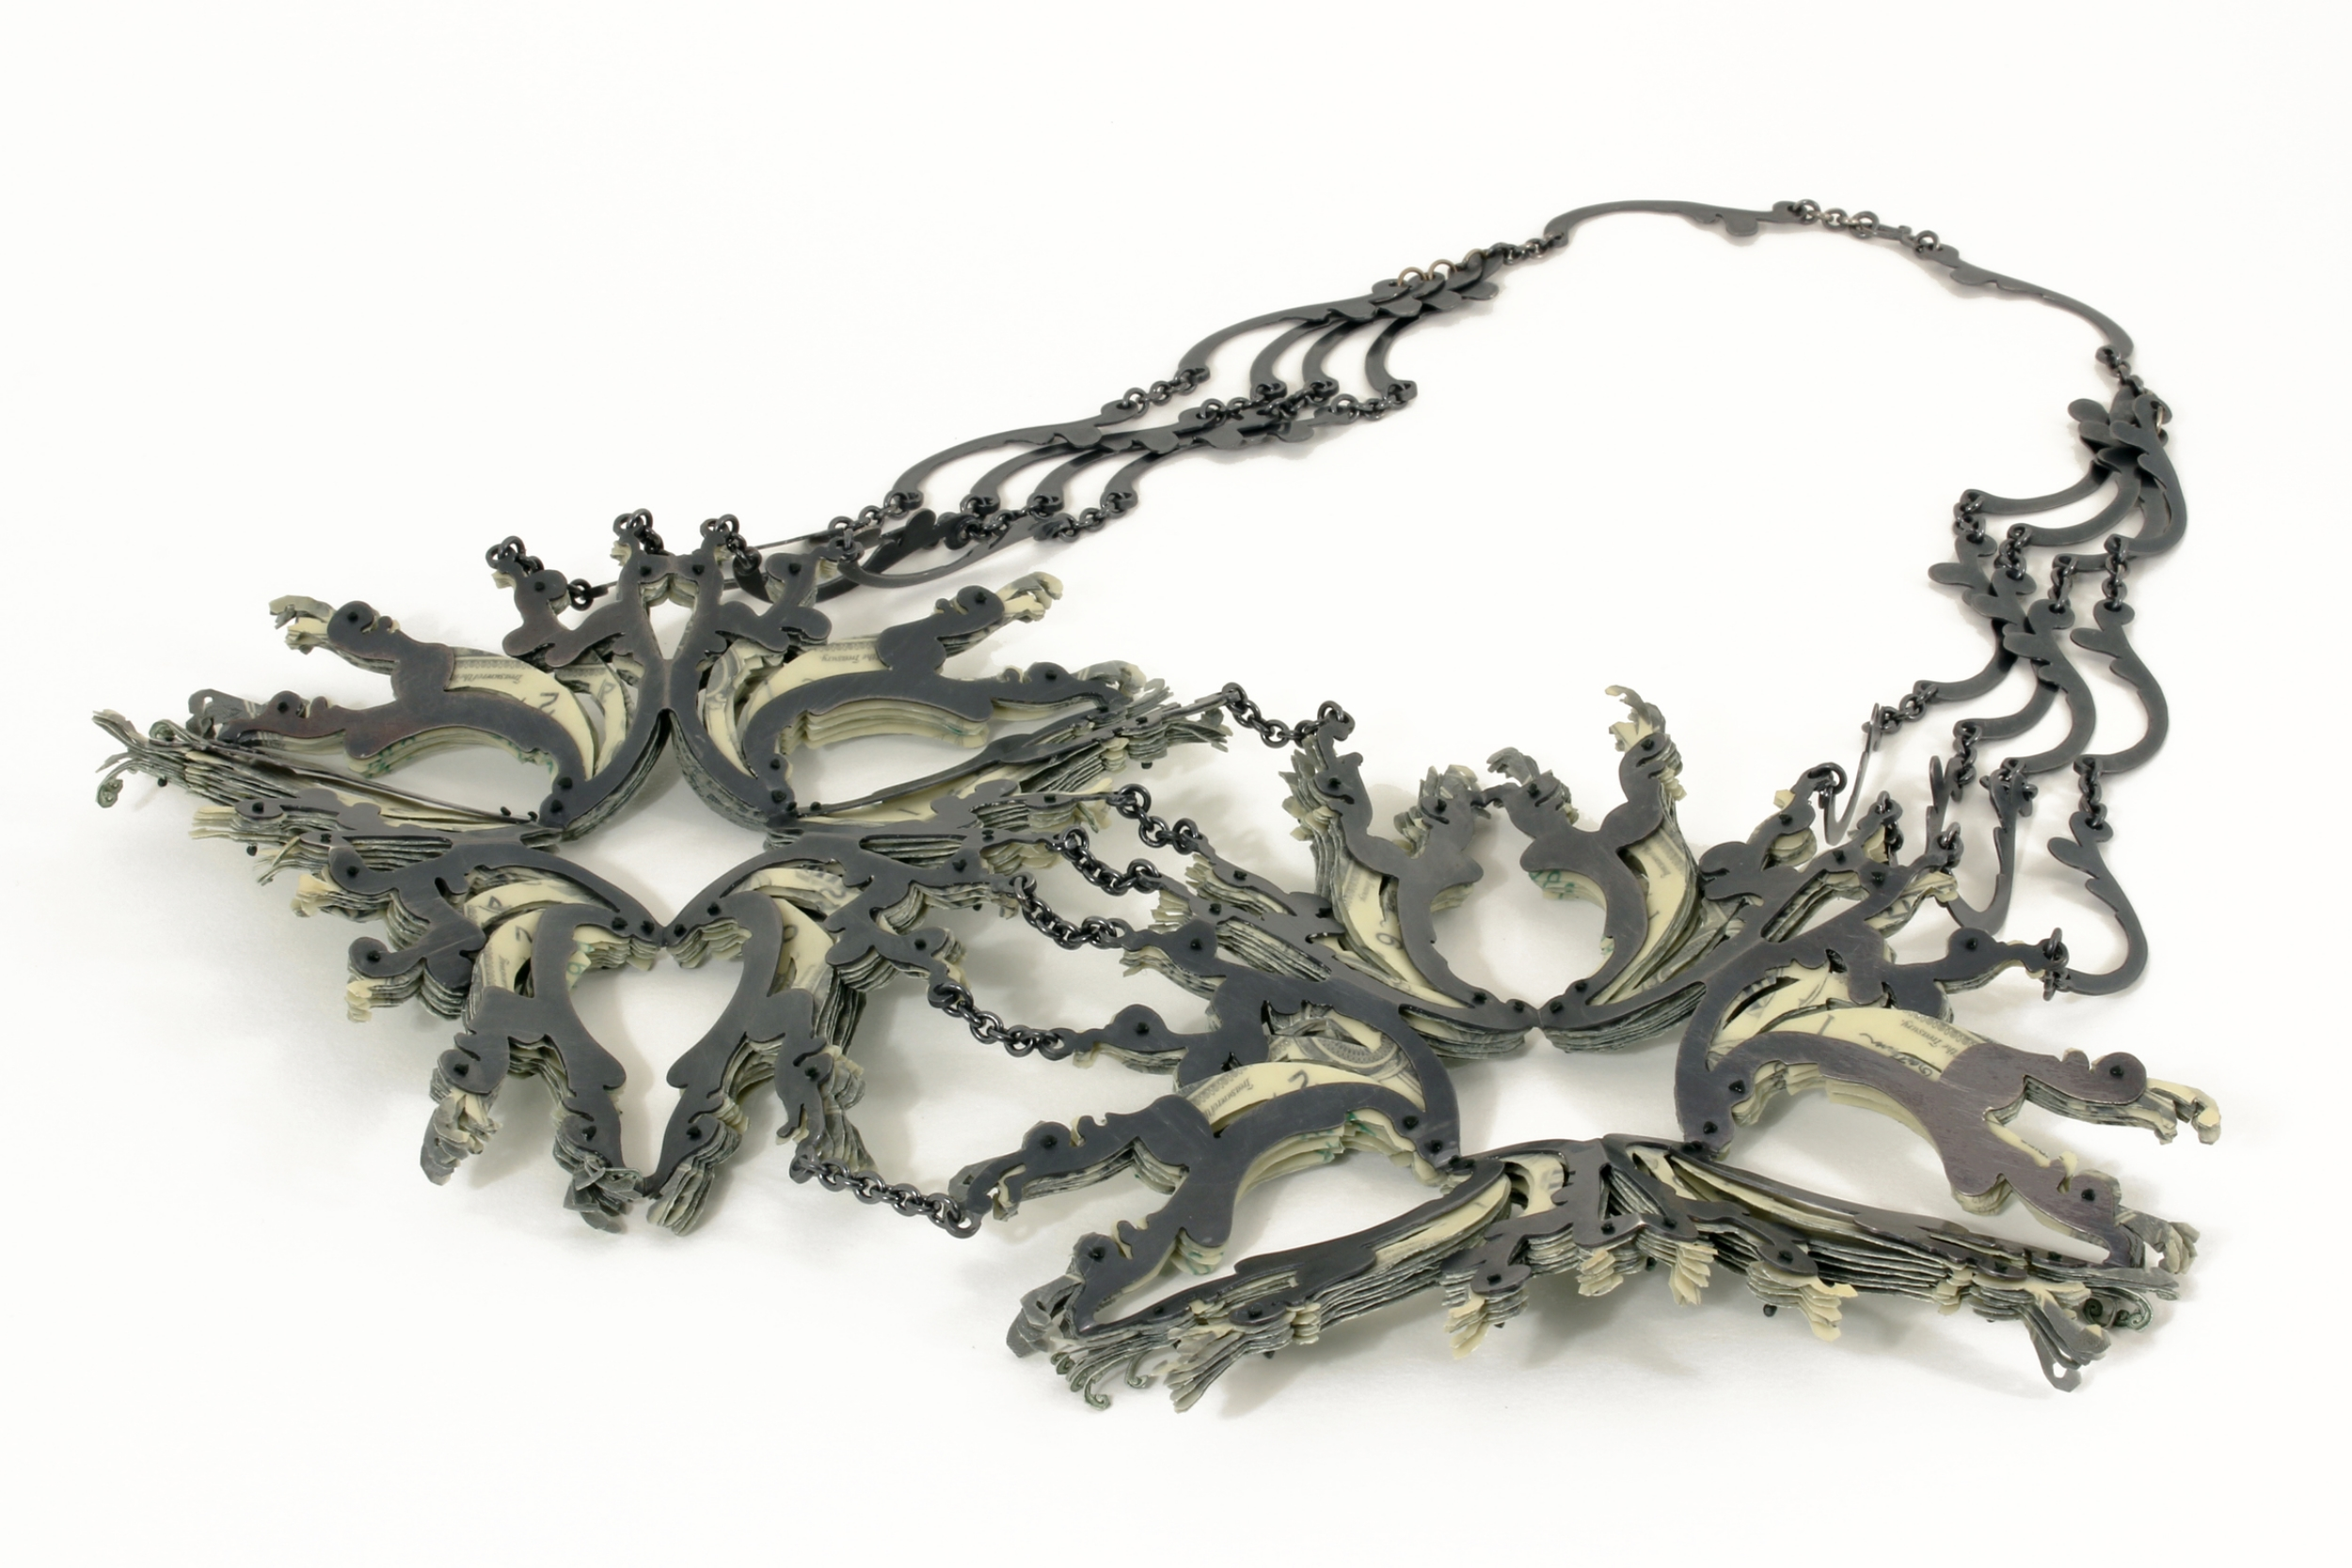 $84.00 Currency Converted | Necklace Back Side | US Currency, Silver, Latex, and Monofilament | 2014 | Private Collection | 1/1